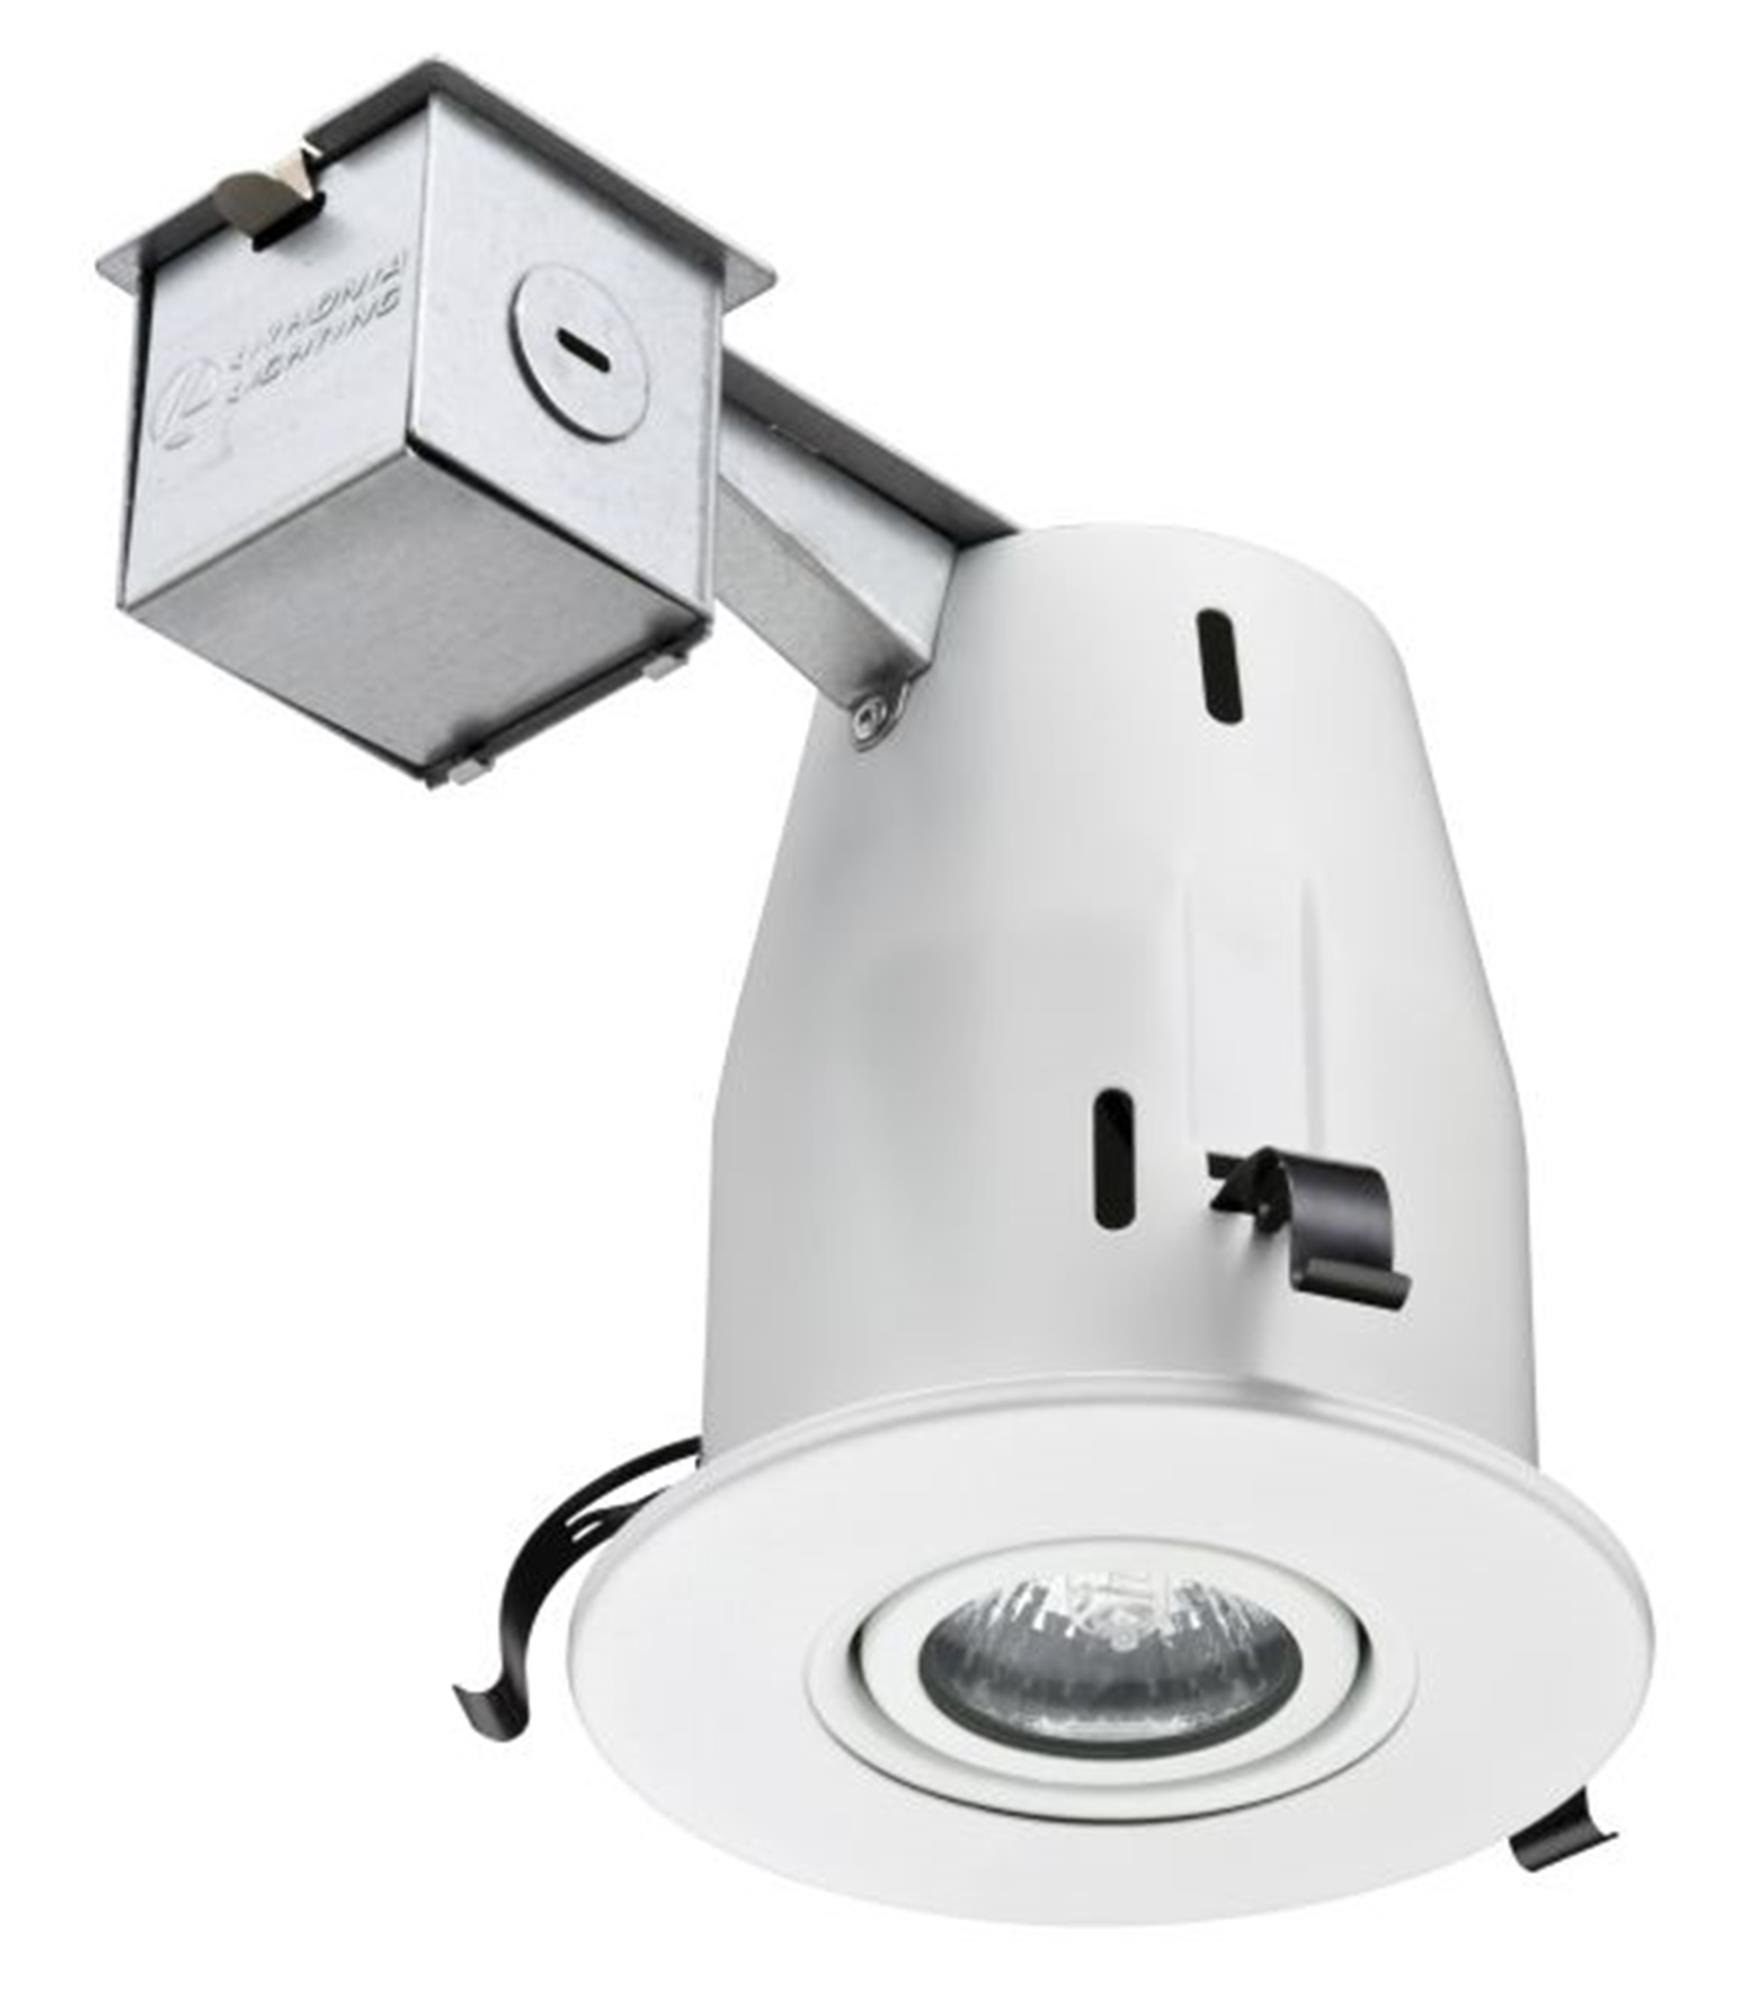 Lithonia Lighting LK4GMW LED LPI M6 4 Inch Gimbal Kit with LED Lamp Included in White